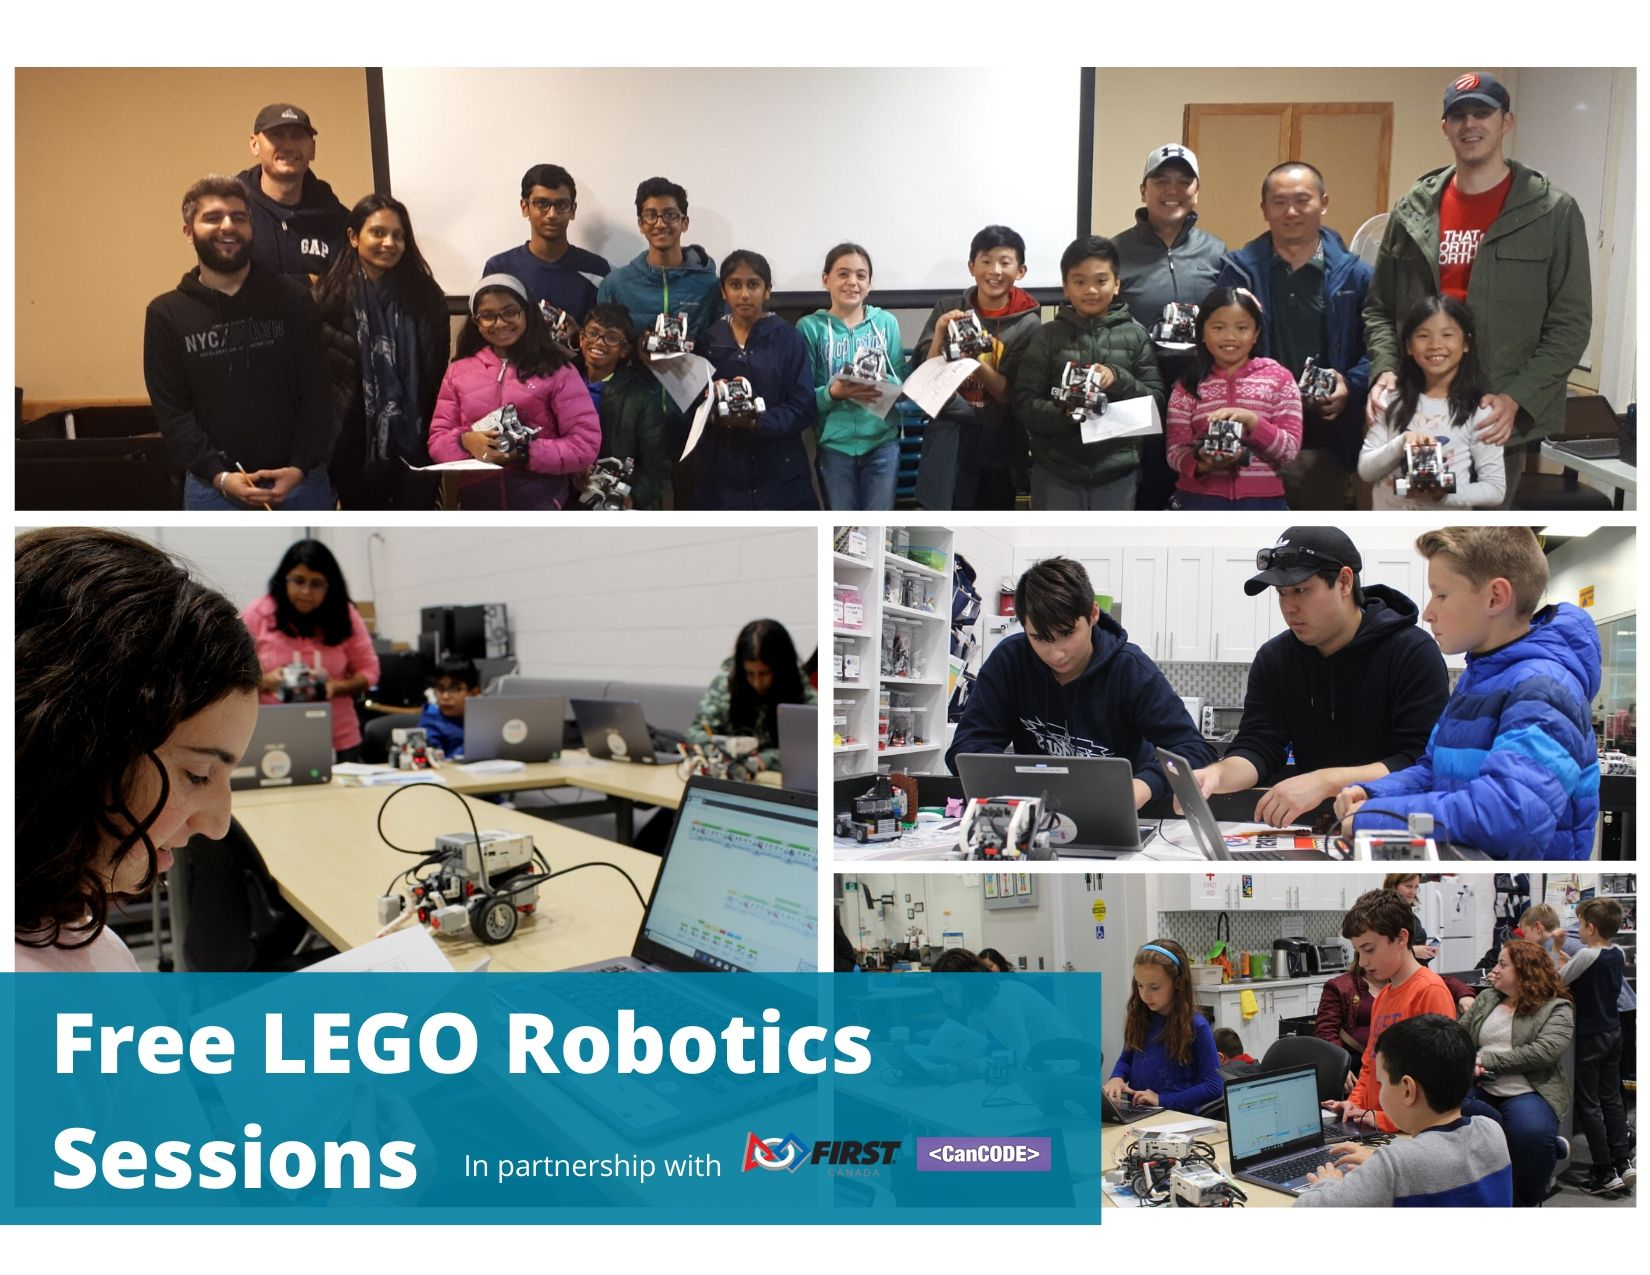 Free LEGO Robotics Drop-in Sessions in Partnership With FIRST Robotics Canada